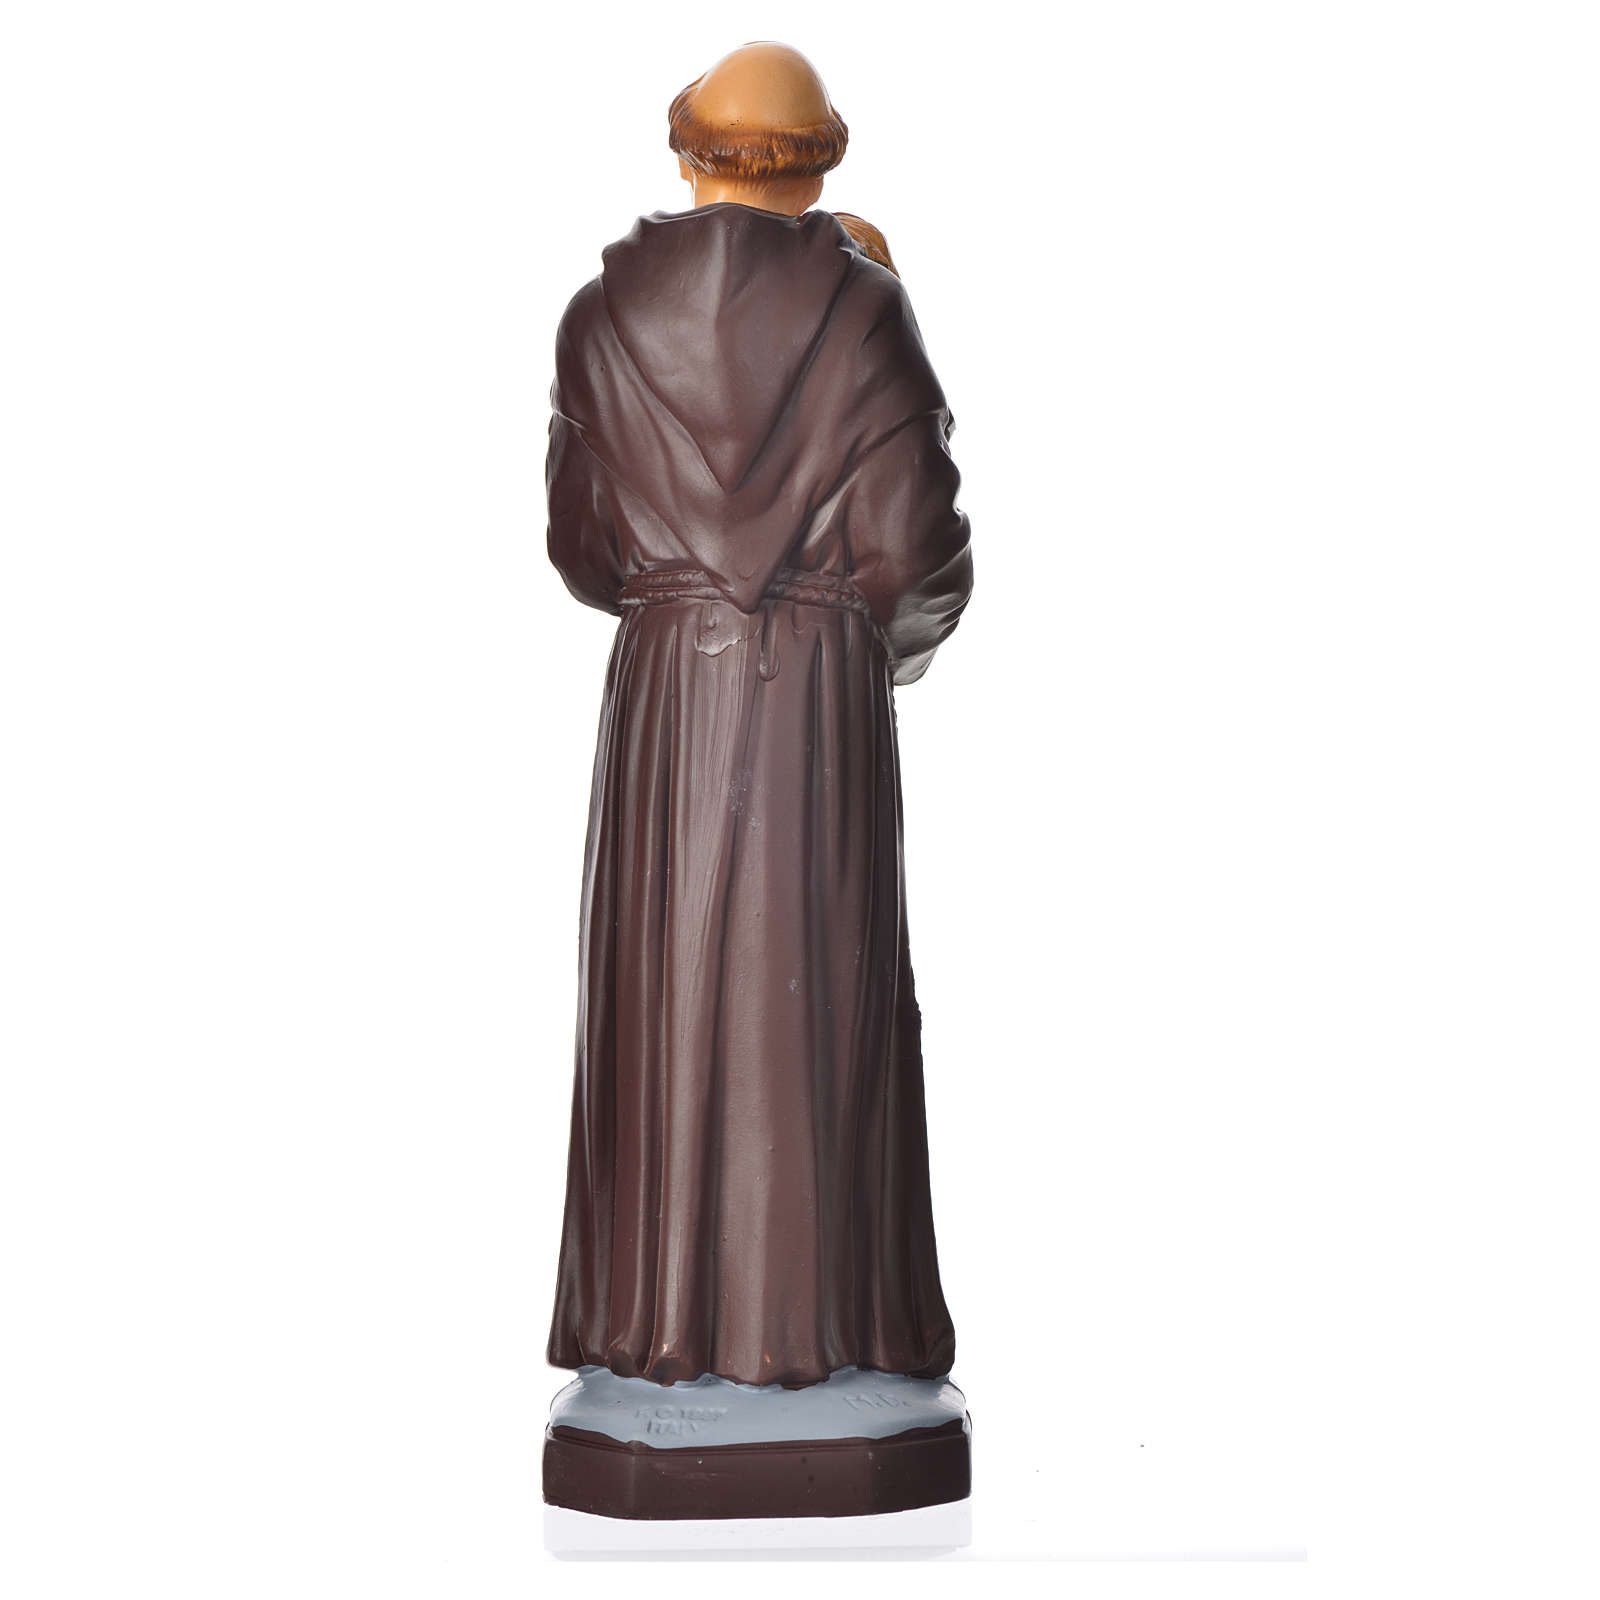 Saint Anthony 20cm, unbreakable material 4